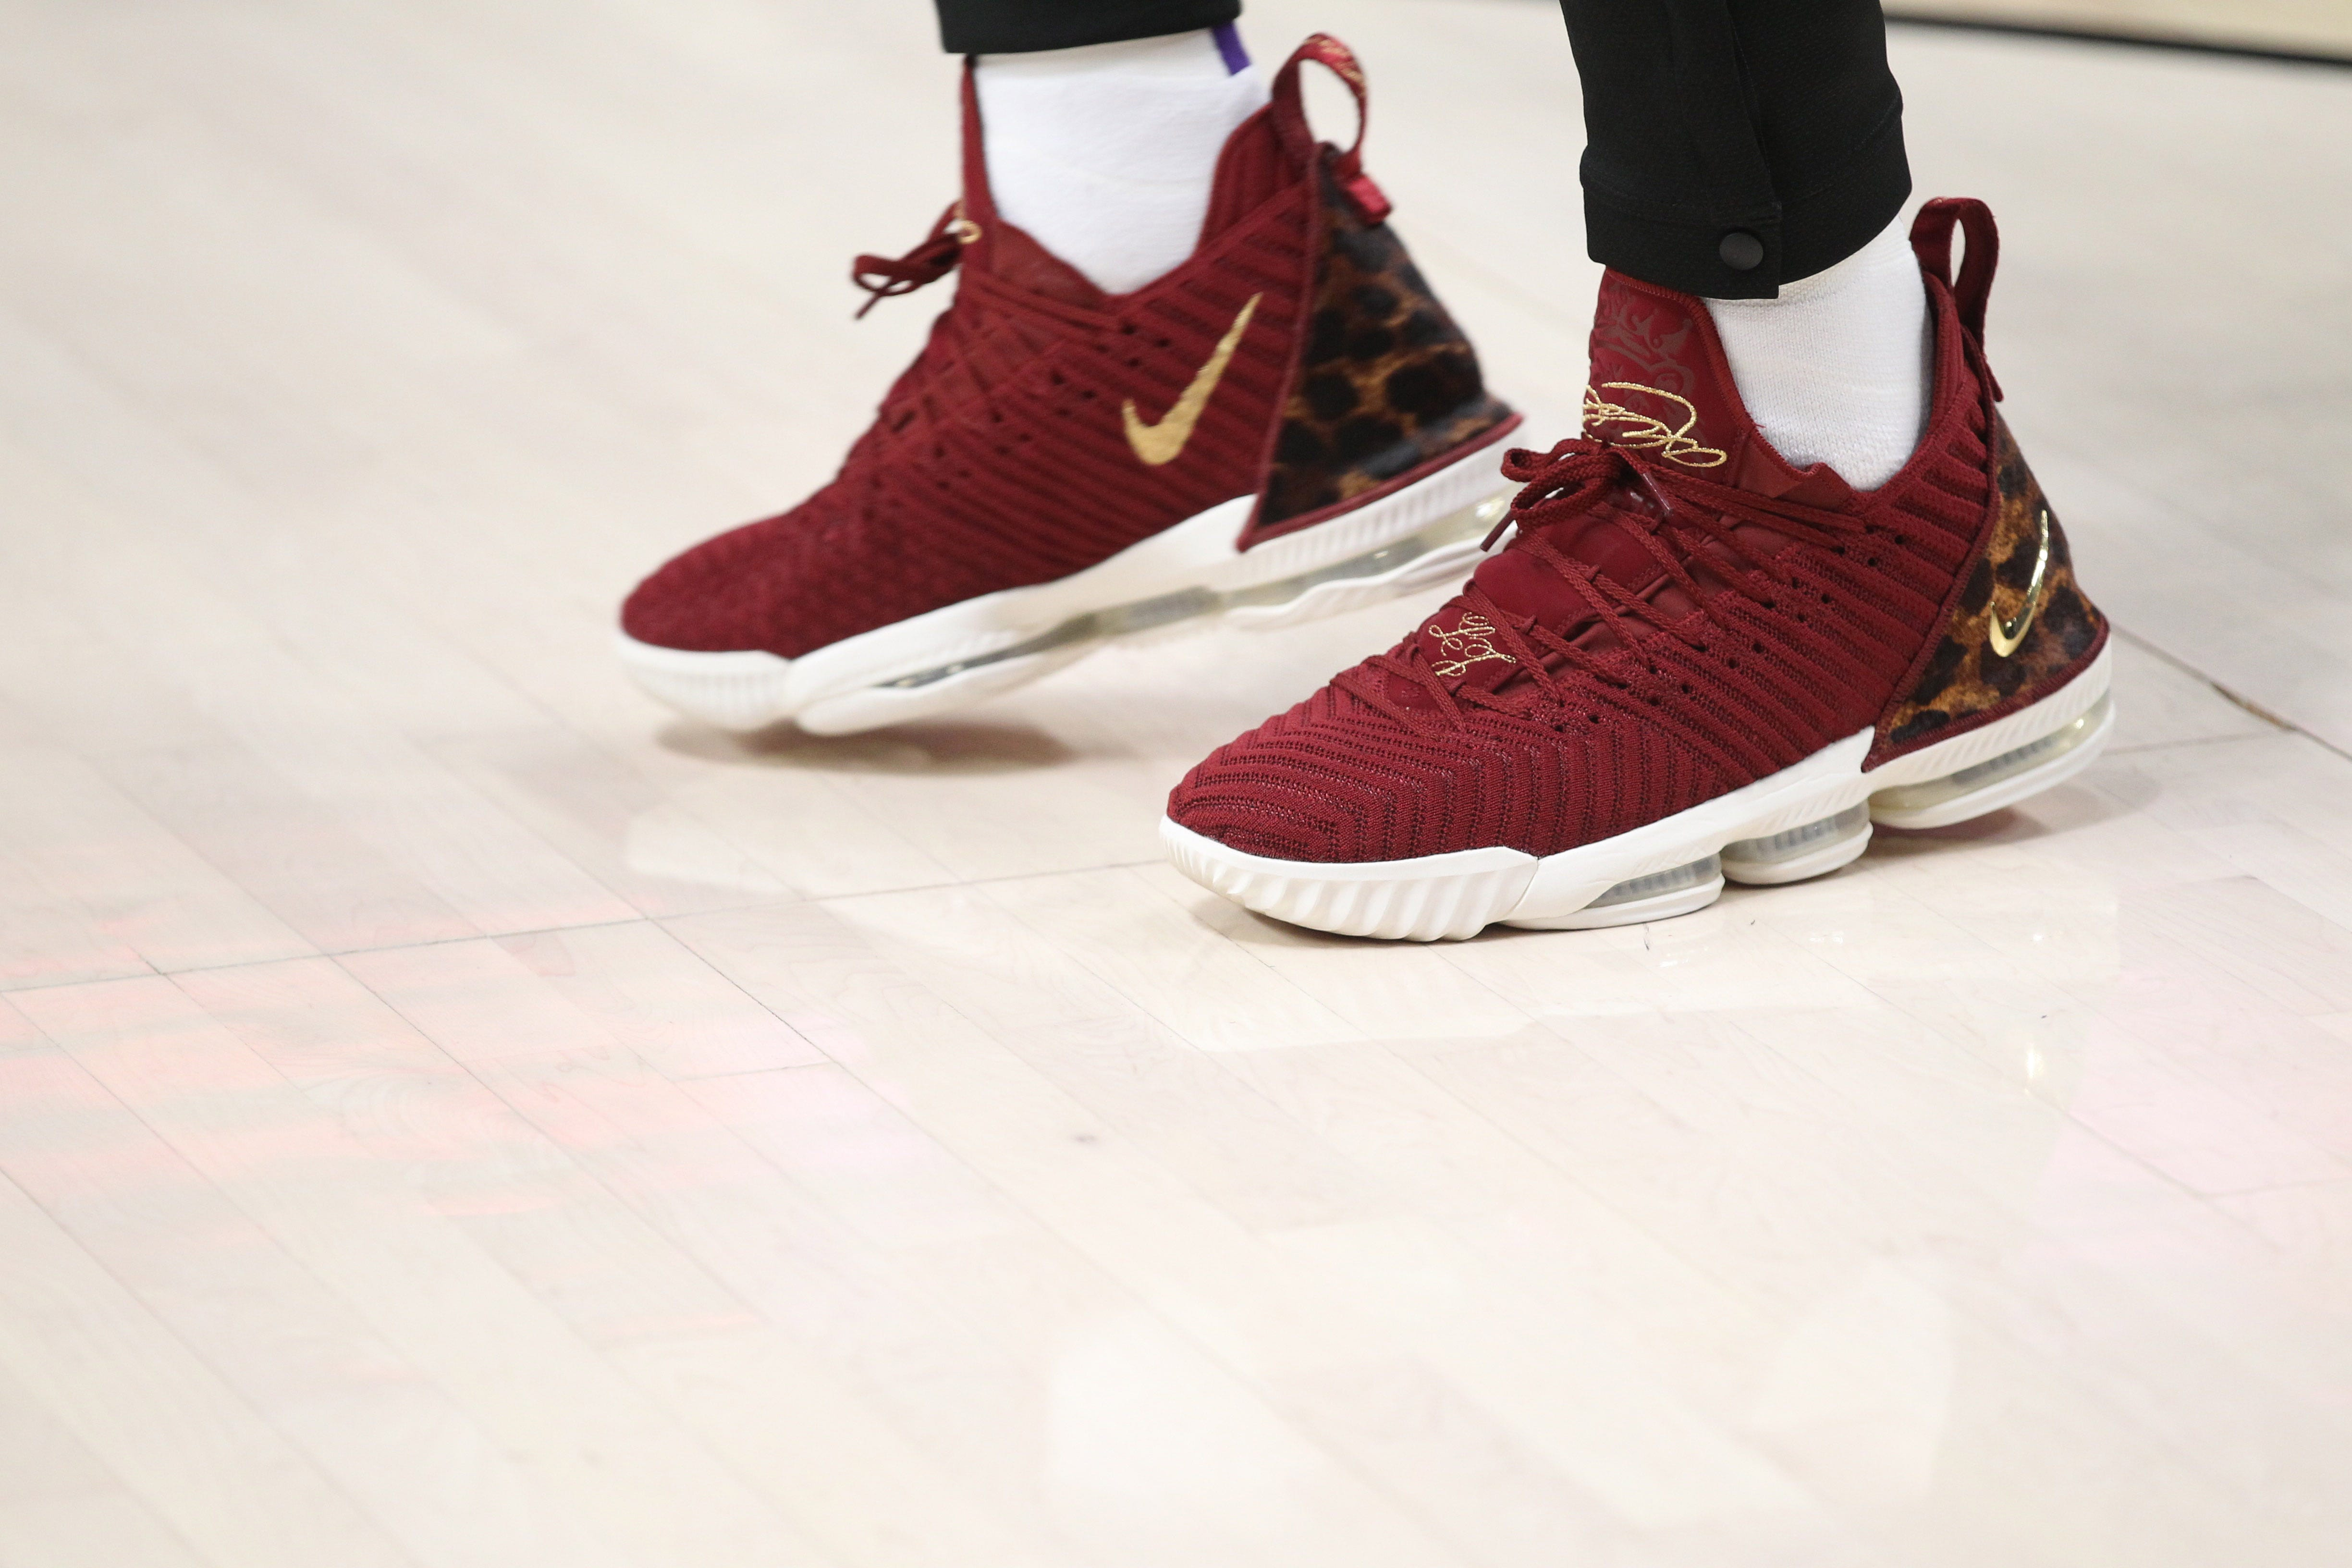 LeBron James: Gold and burgundy shoes